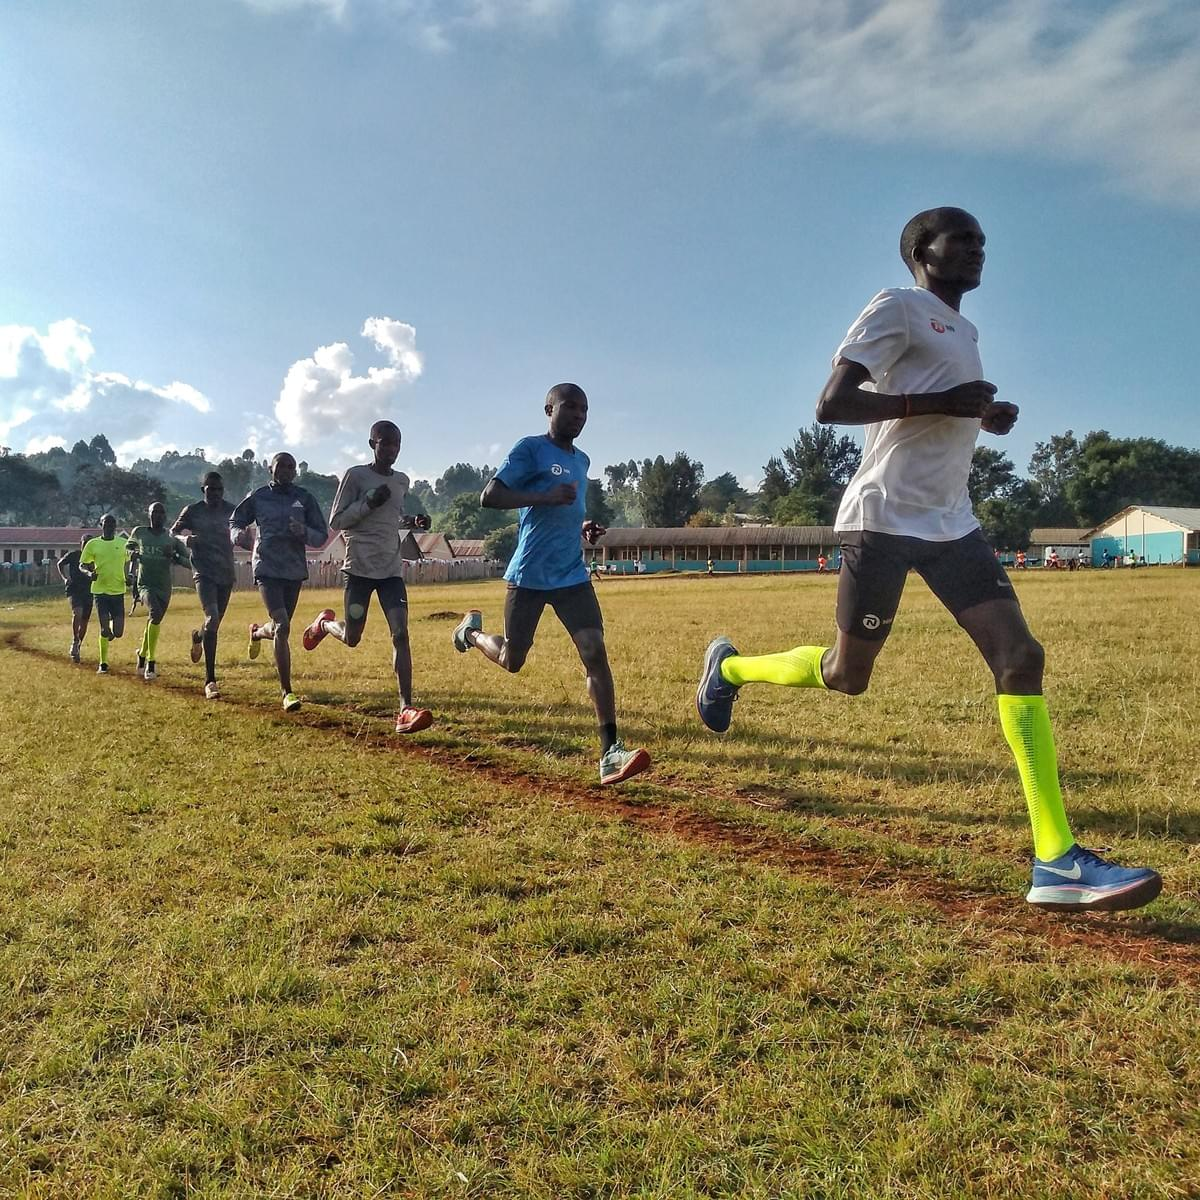 Running with Kiprotich: 2012 London Olympic marathon champion Stephen Kiprotich leads a group of Ugandan runners during  a track session in Kapchorwa, Uganda